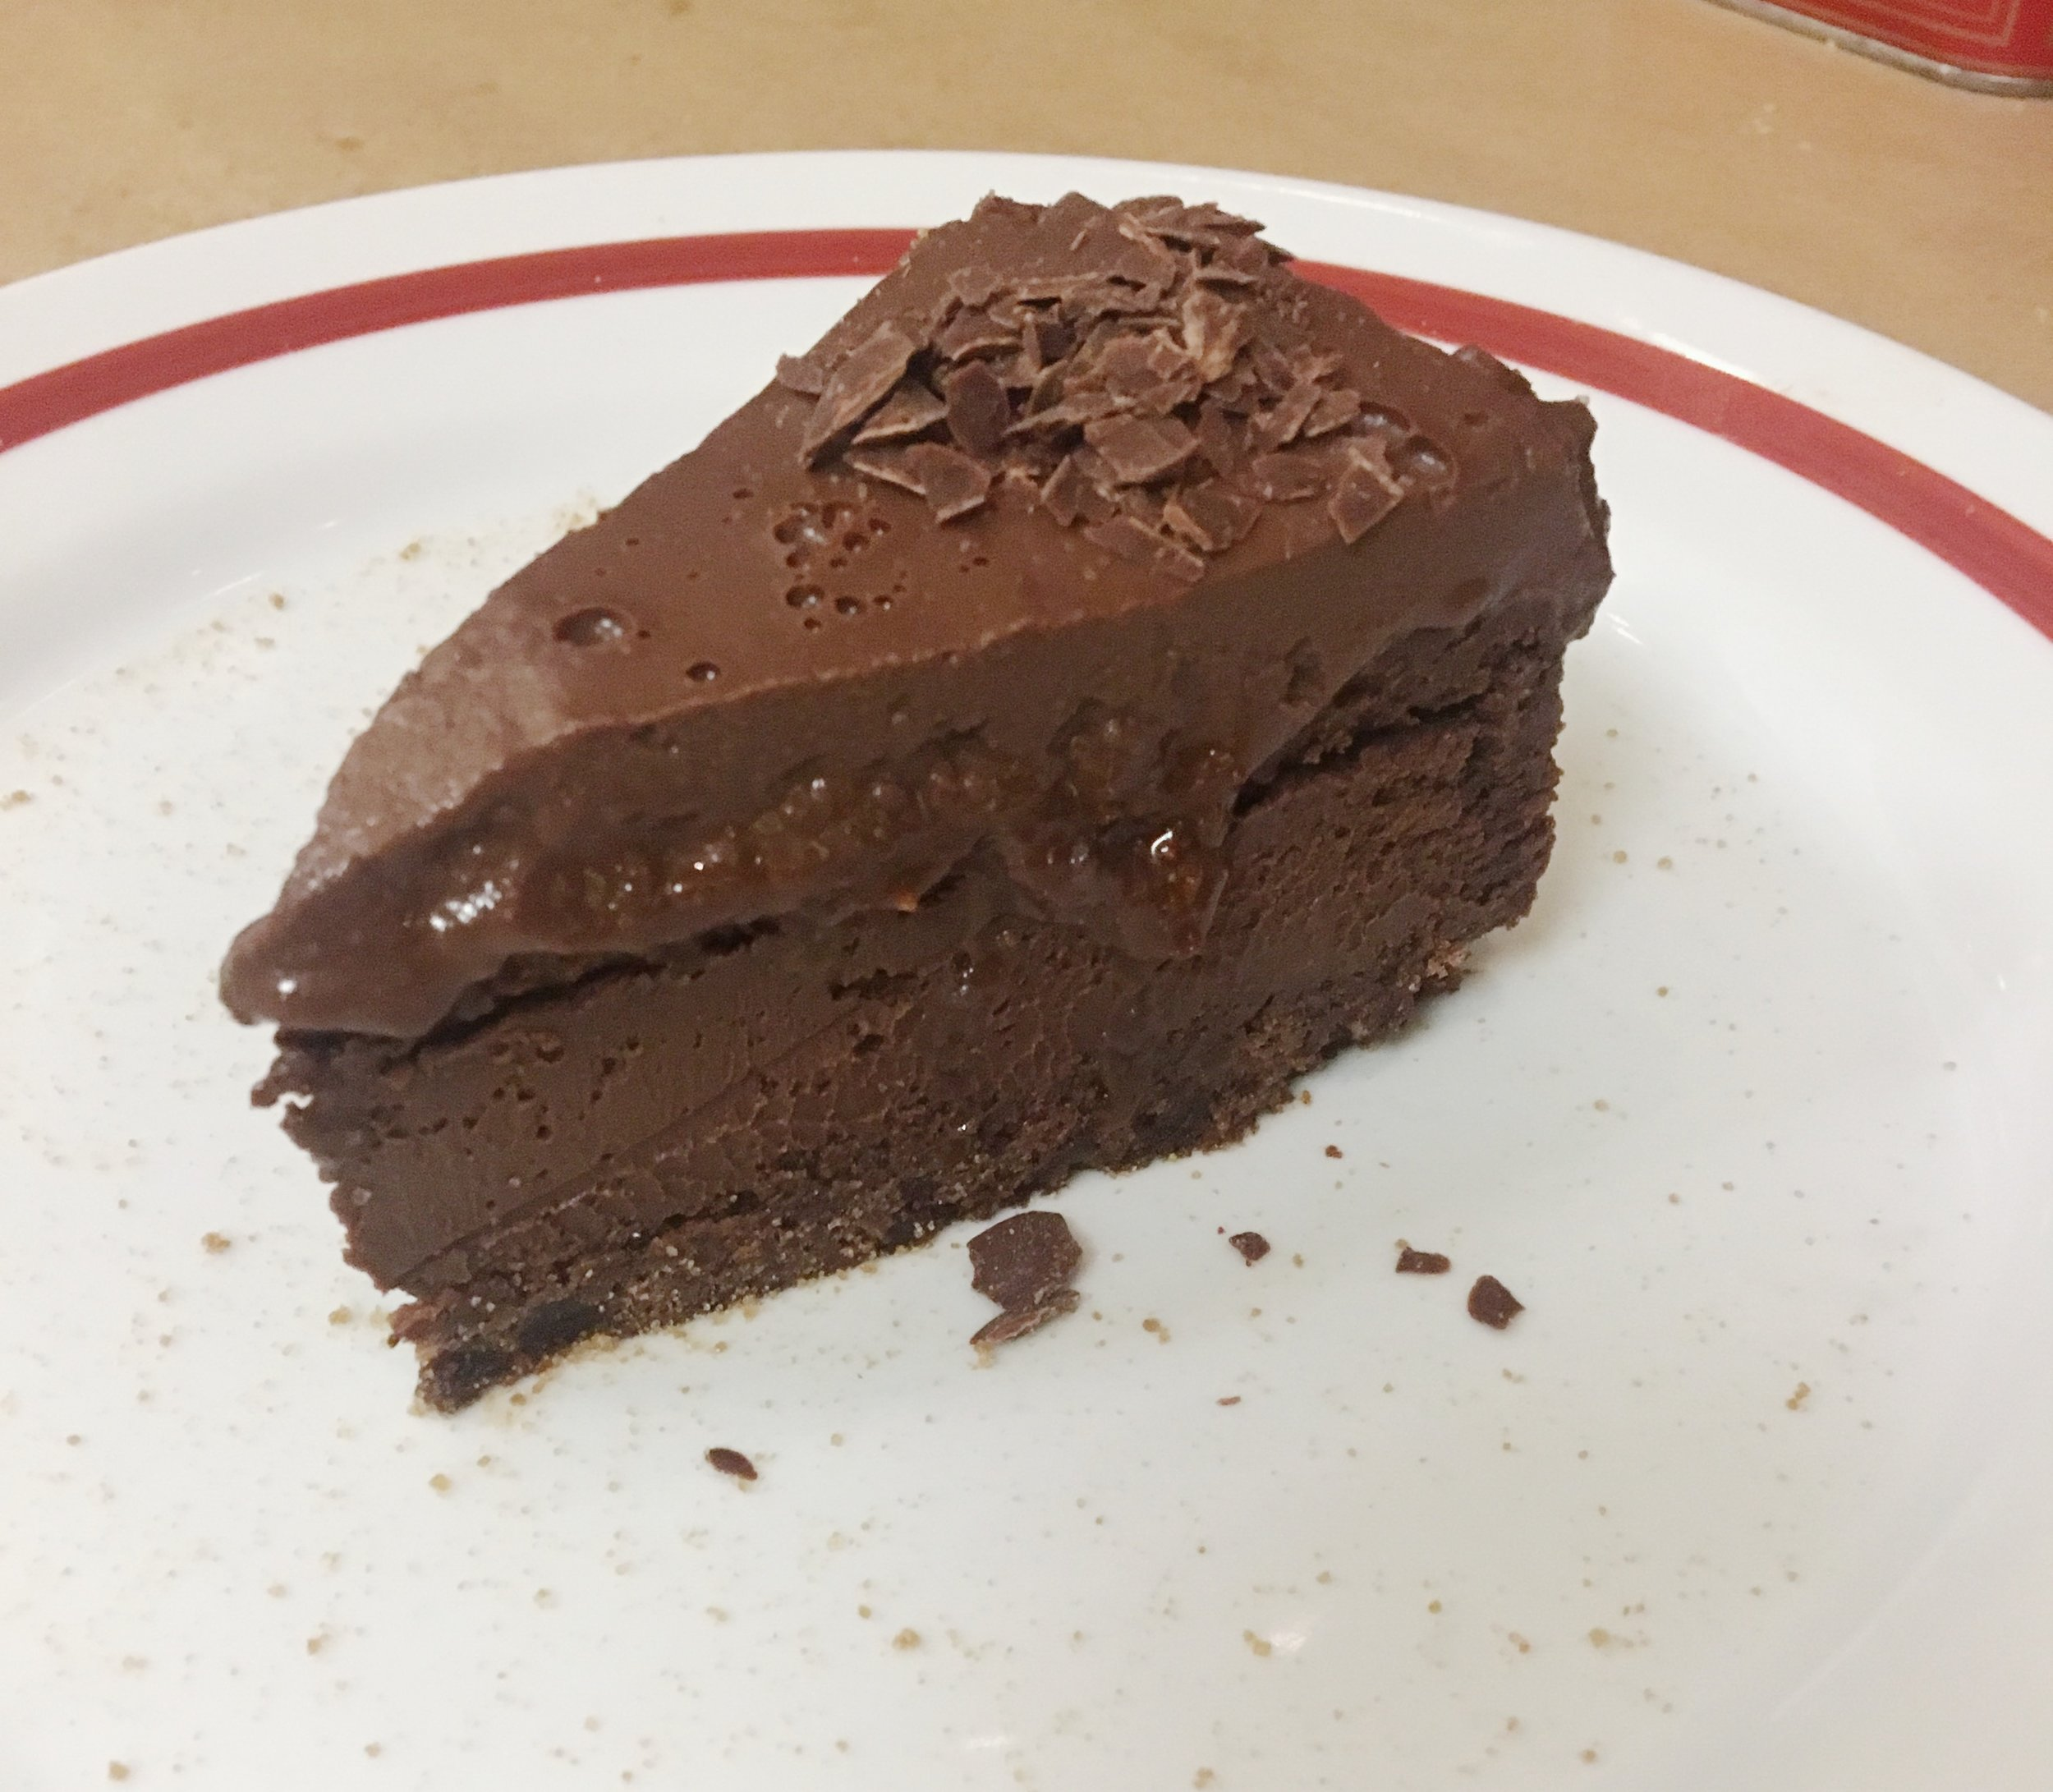 This is seriously the best chocolate cake I've ever had! If you go here, I highly recommend saving room for dessert! :)